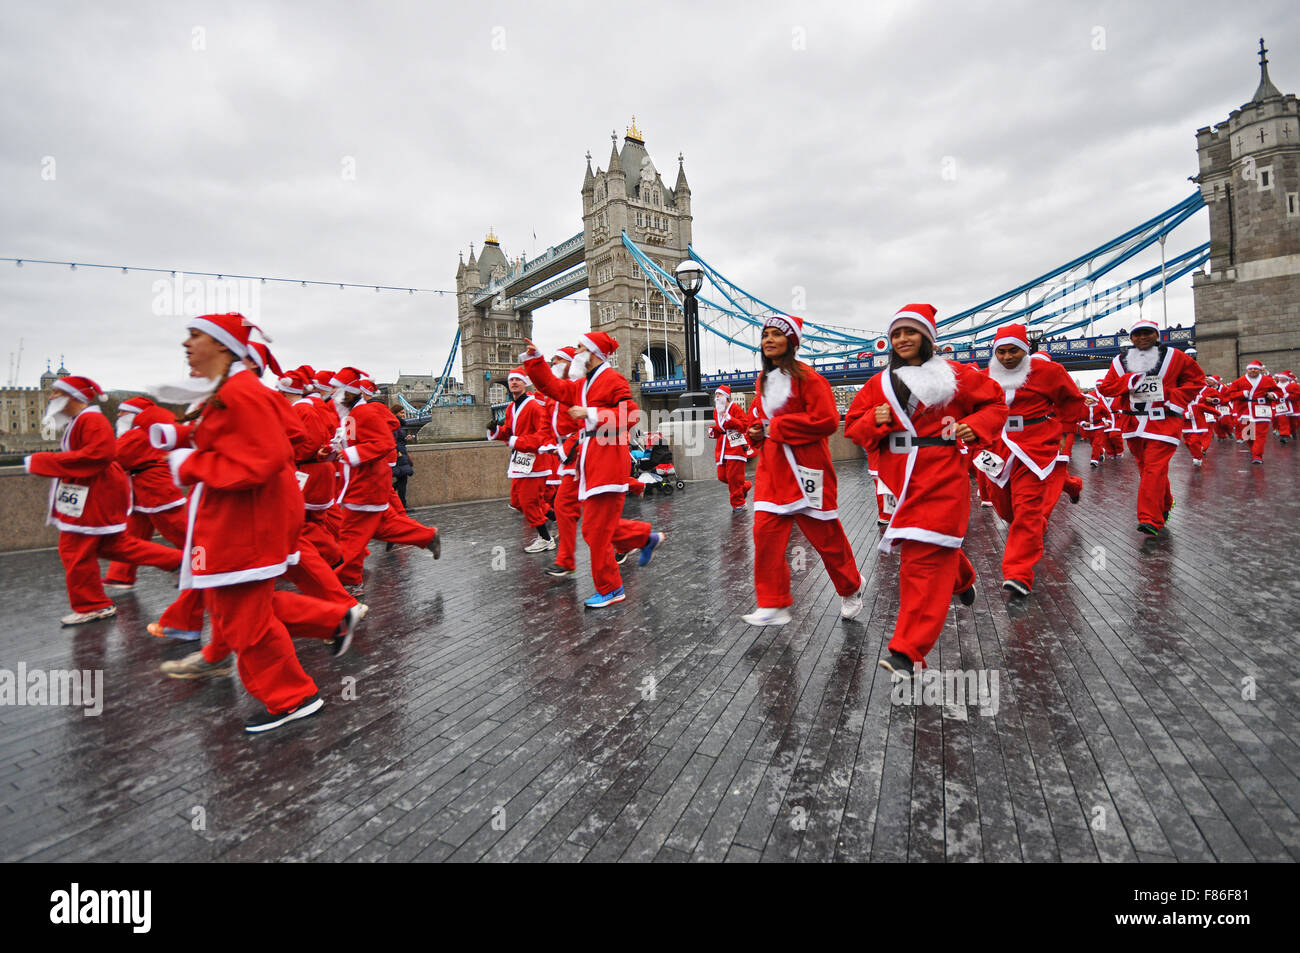 santa-in-the-city-is-one-of-londons-newest-santa-runs-with-its-start-F86F81.jpg